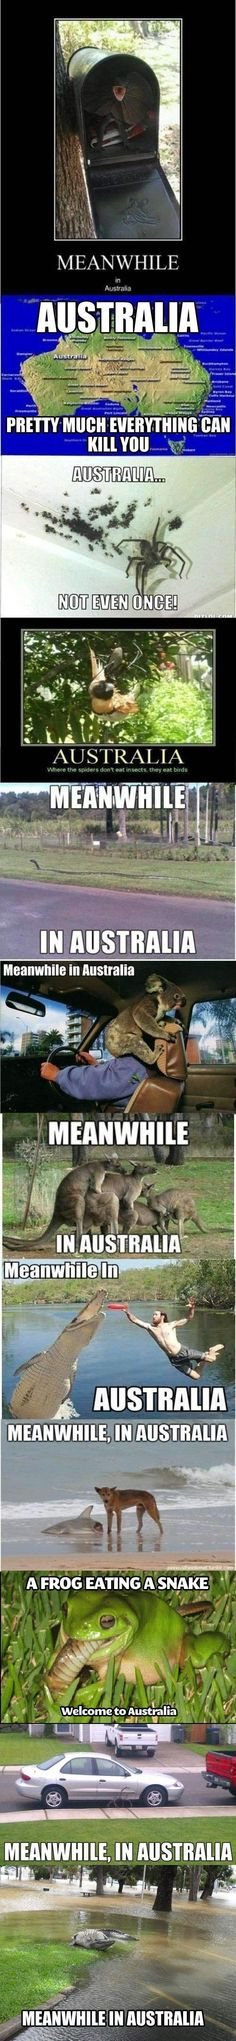 Meanwhile in Australia compilation « 9greg